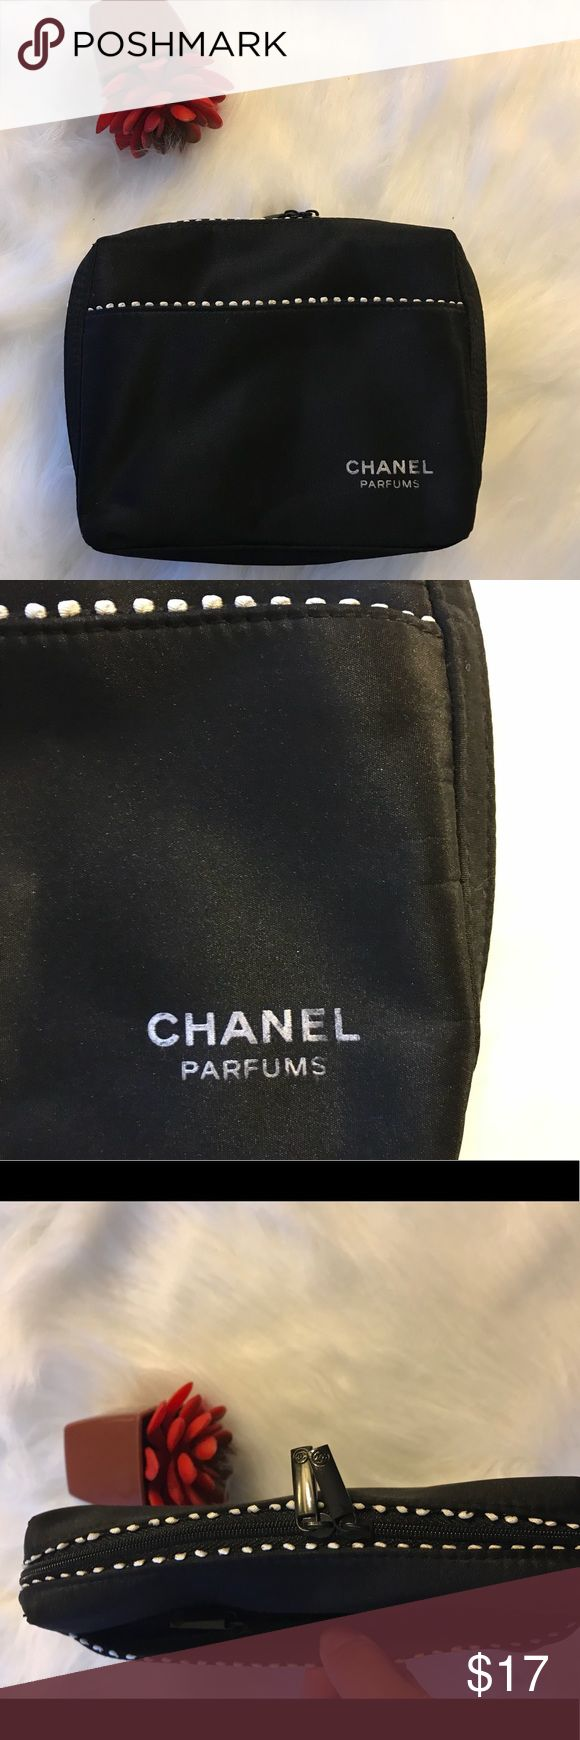 Chanel makeup bag Chanel make up bag. Has never been used, the letter are fading a little as you can see in pictures. The inside is clean. There's an extra zipper pocket in the outside. Chanel Bags Cosmetic Bags & Cases